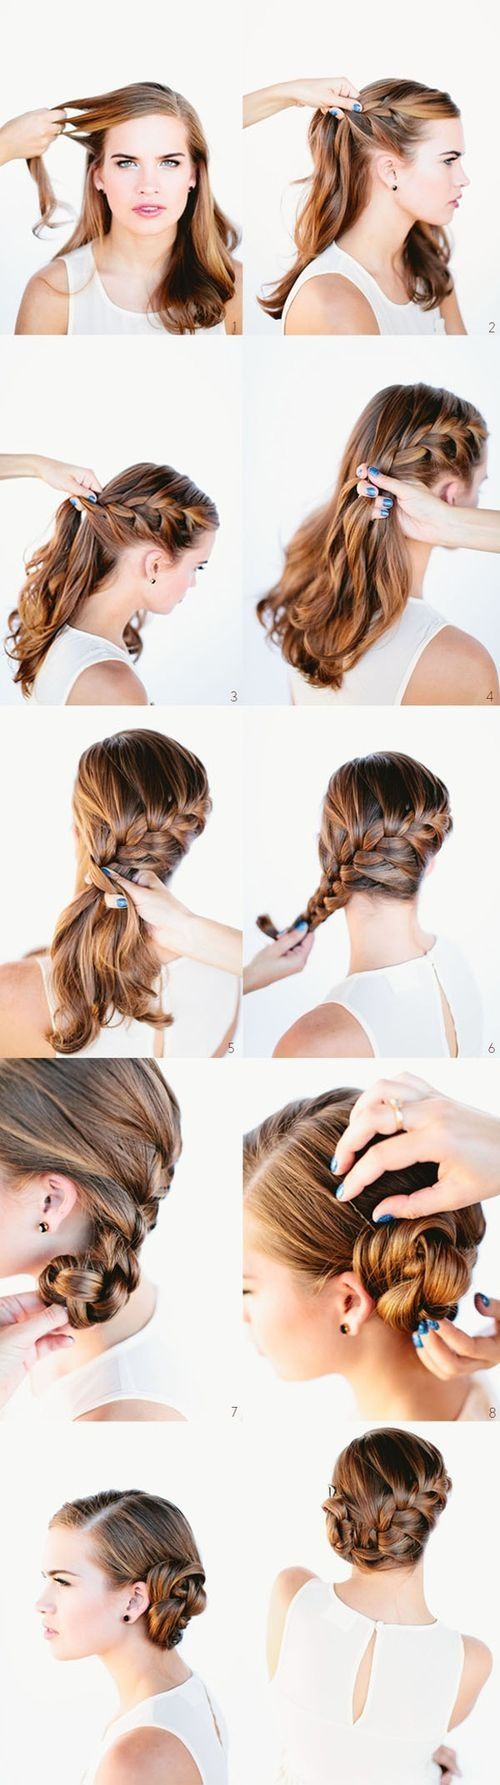 Hair tutorial! http://www.jexshop.com/